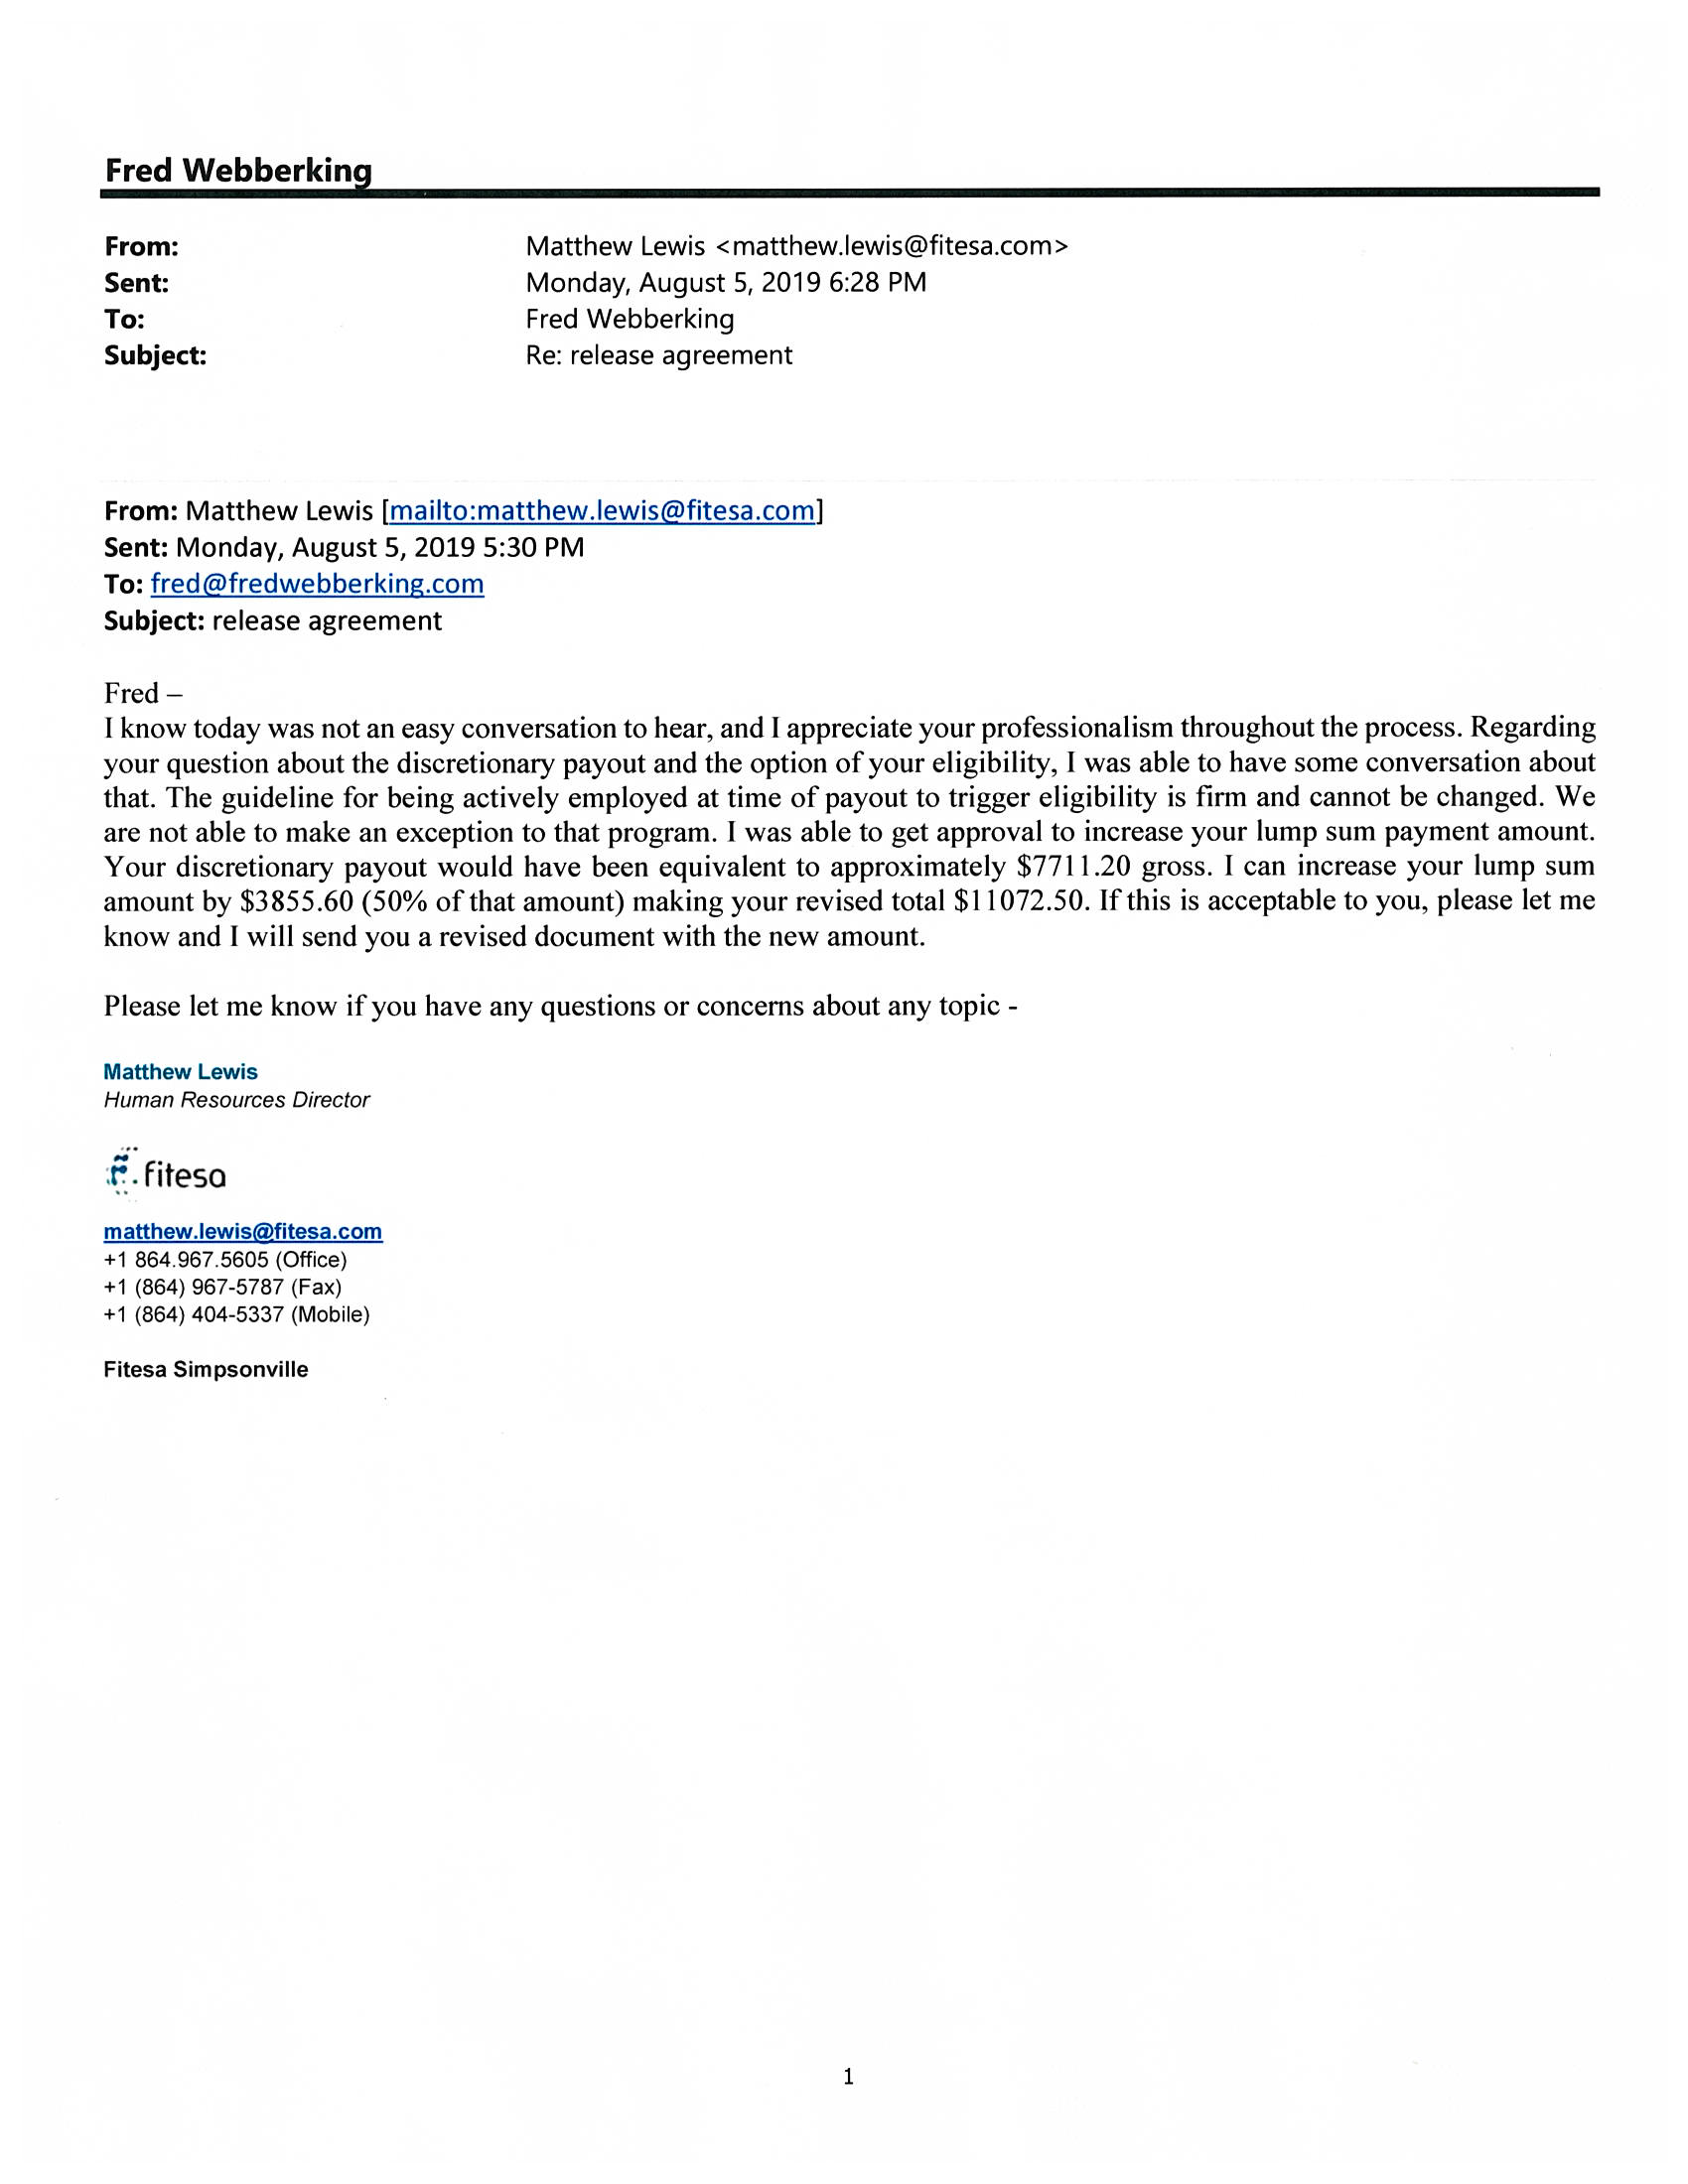 Reference Letter - Fitesa - Mathew Lewis